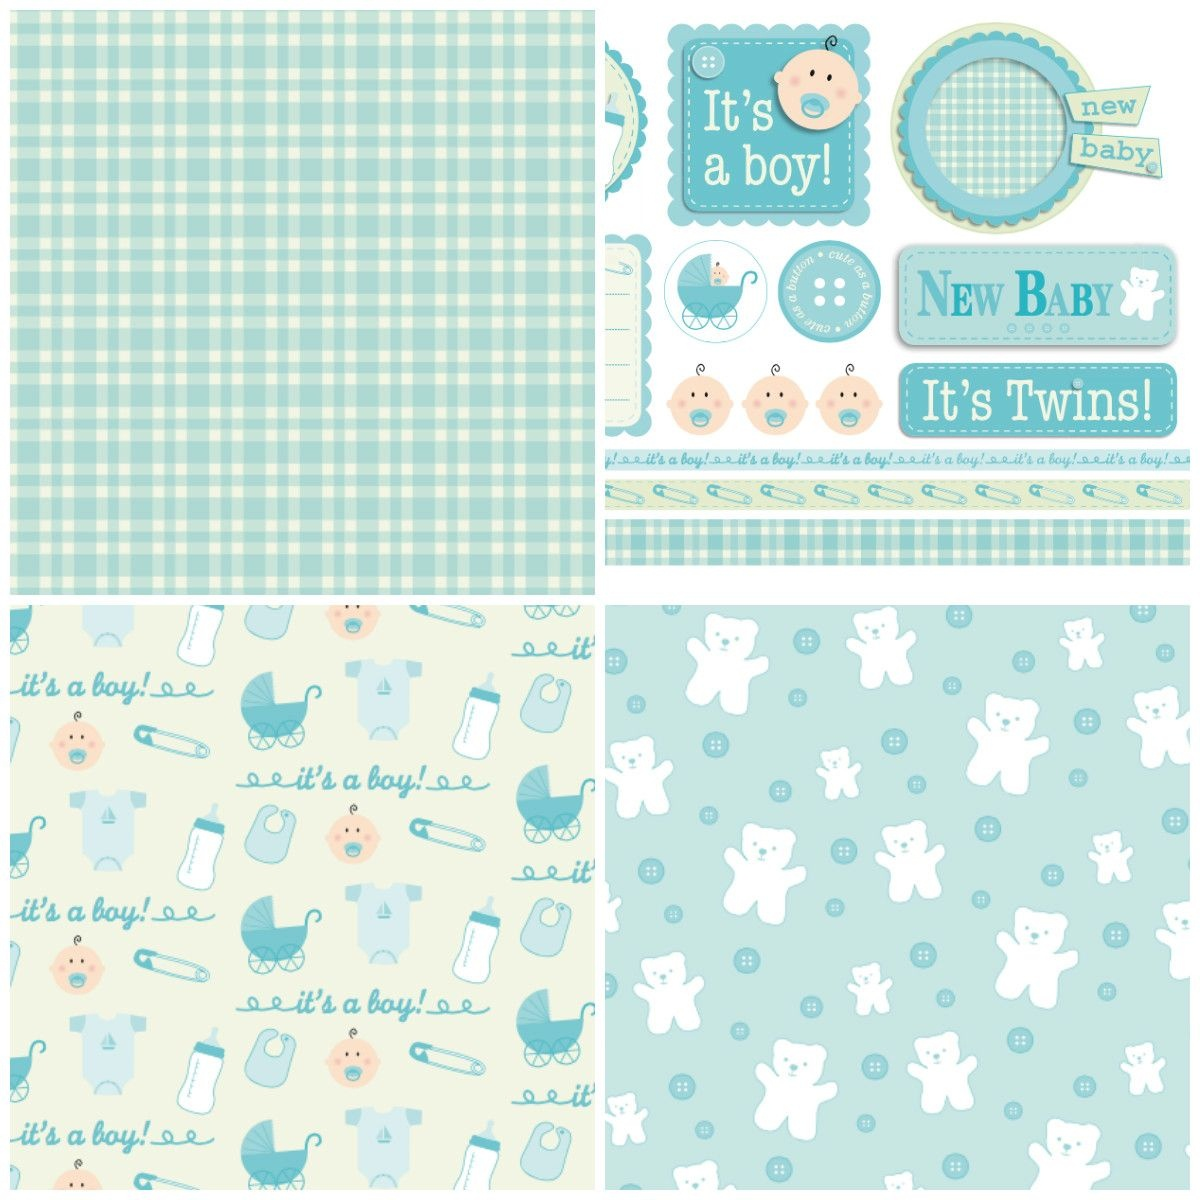 Handmade For Babies – Free Papers | Printable Papers | Digital Paper - Free Printable Baby Scrapbook Pages